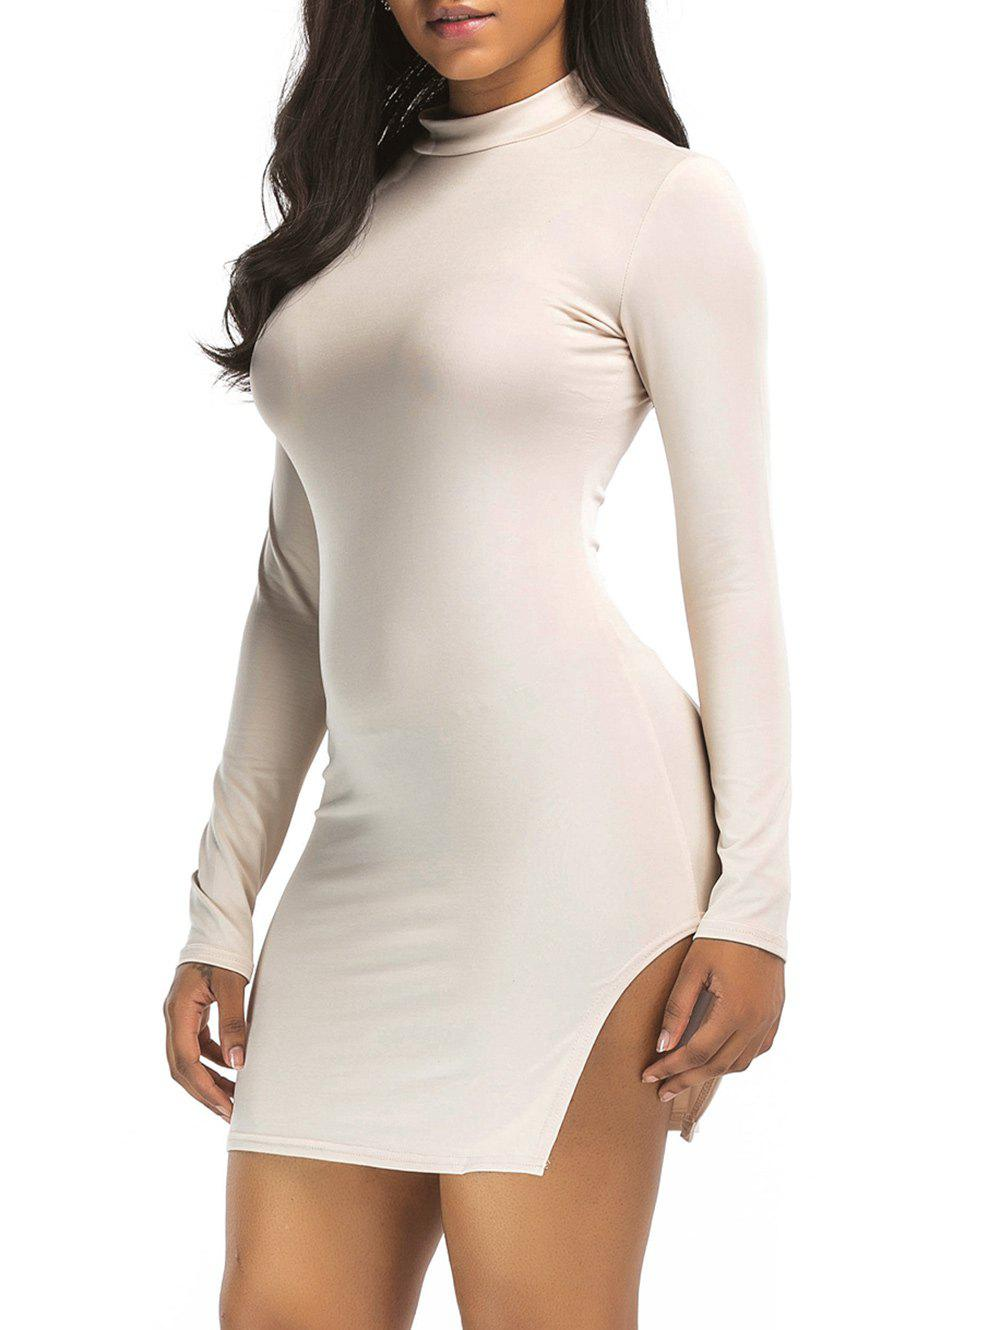 Sale Slit High Neck Bodycon Mini Dress